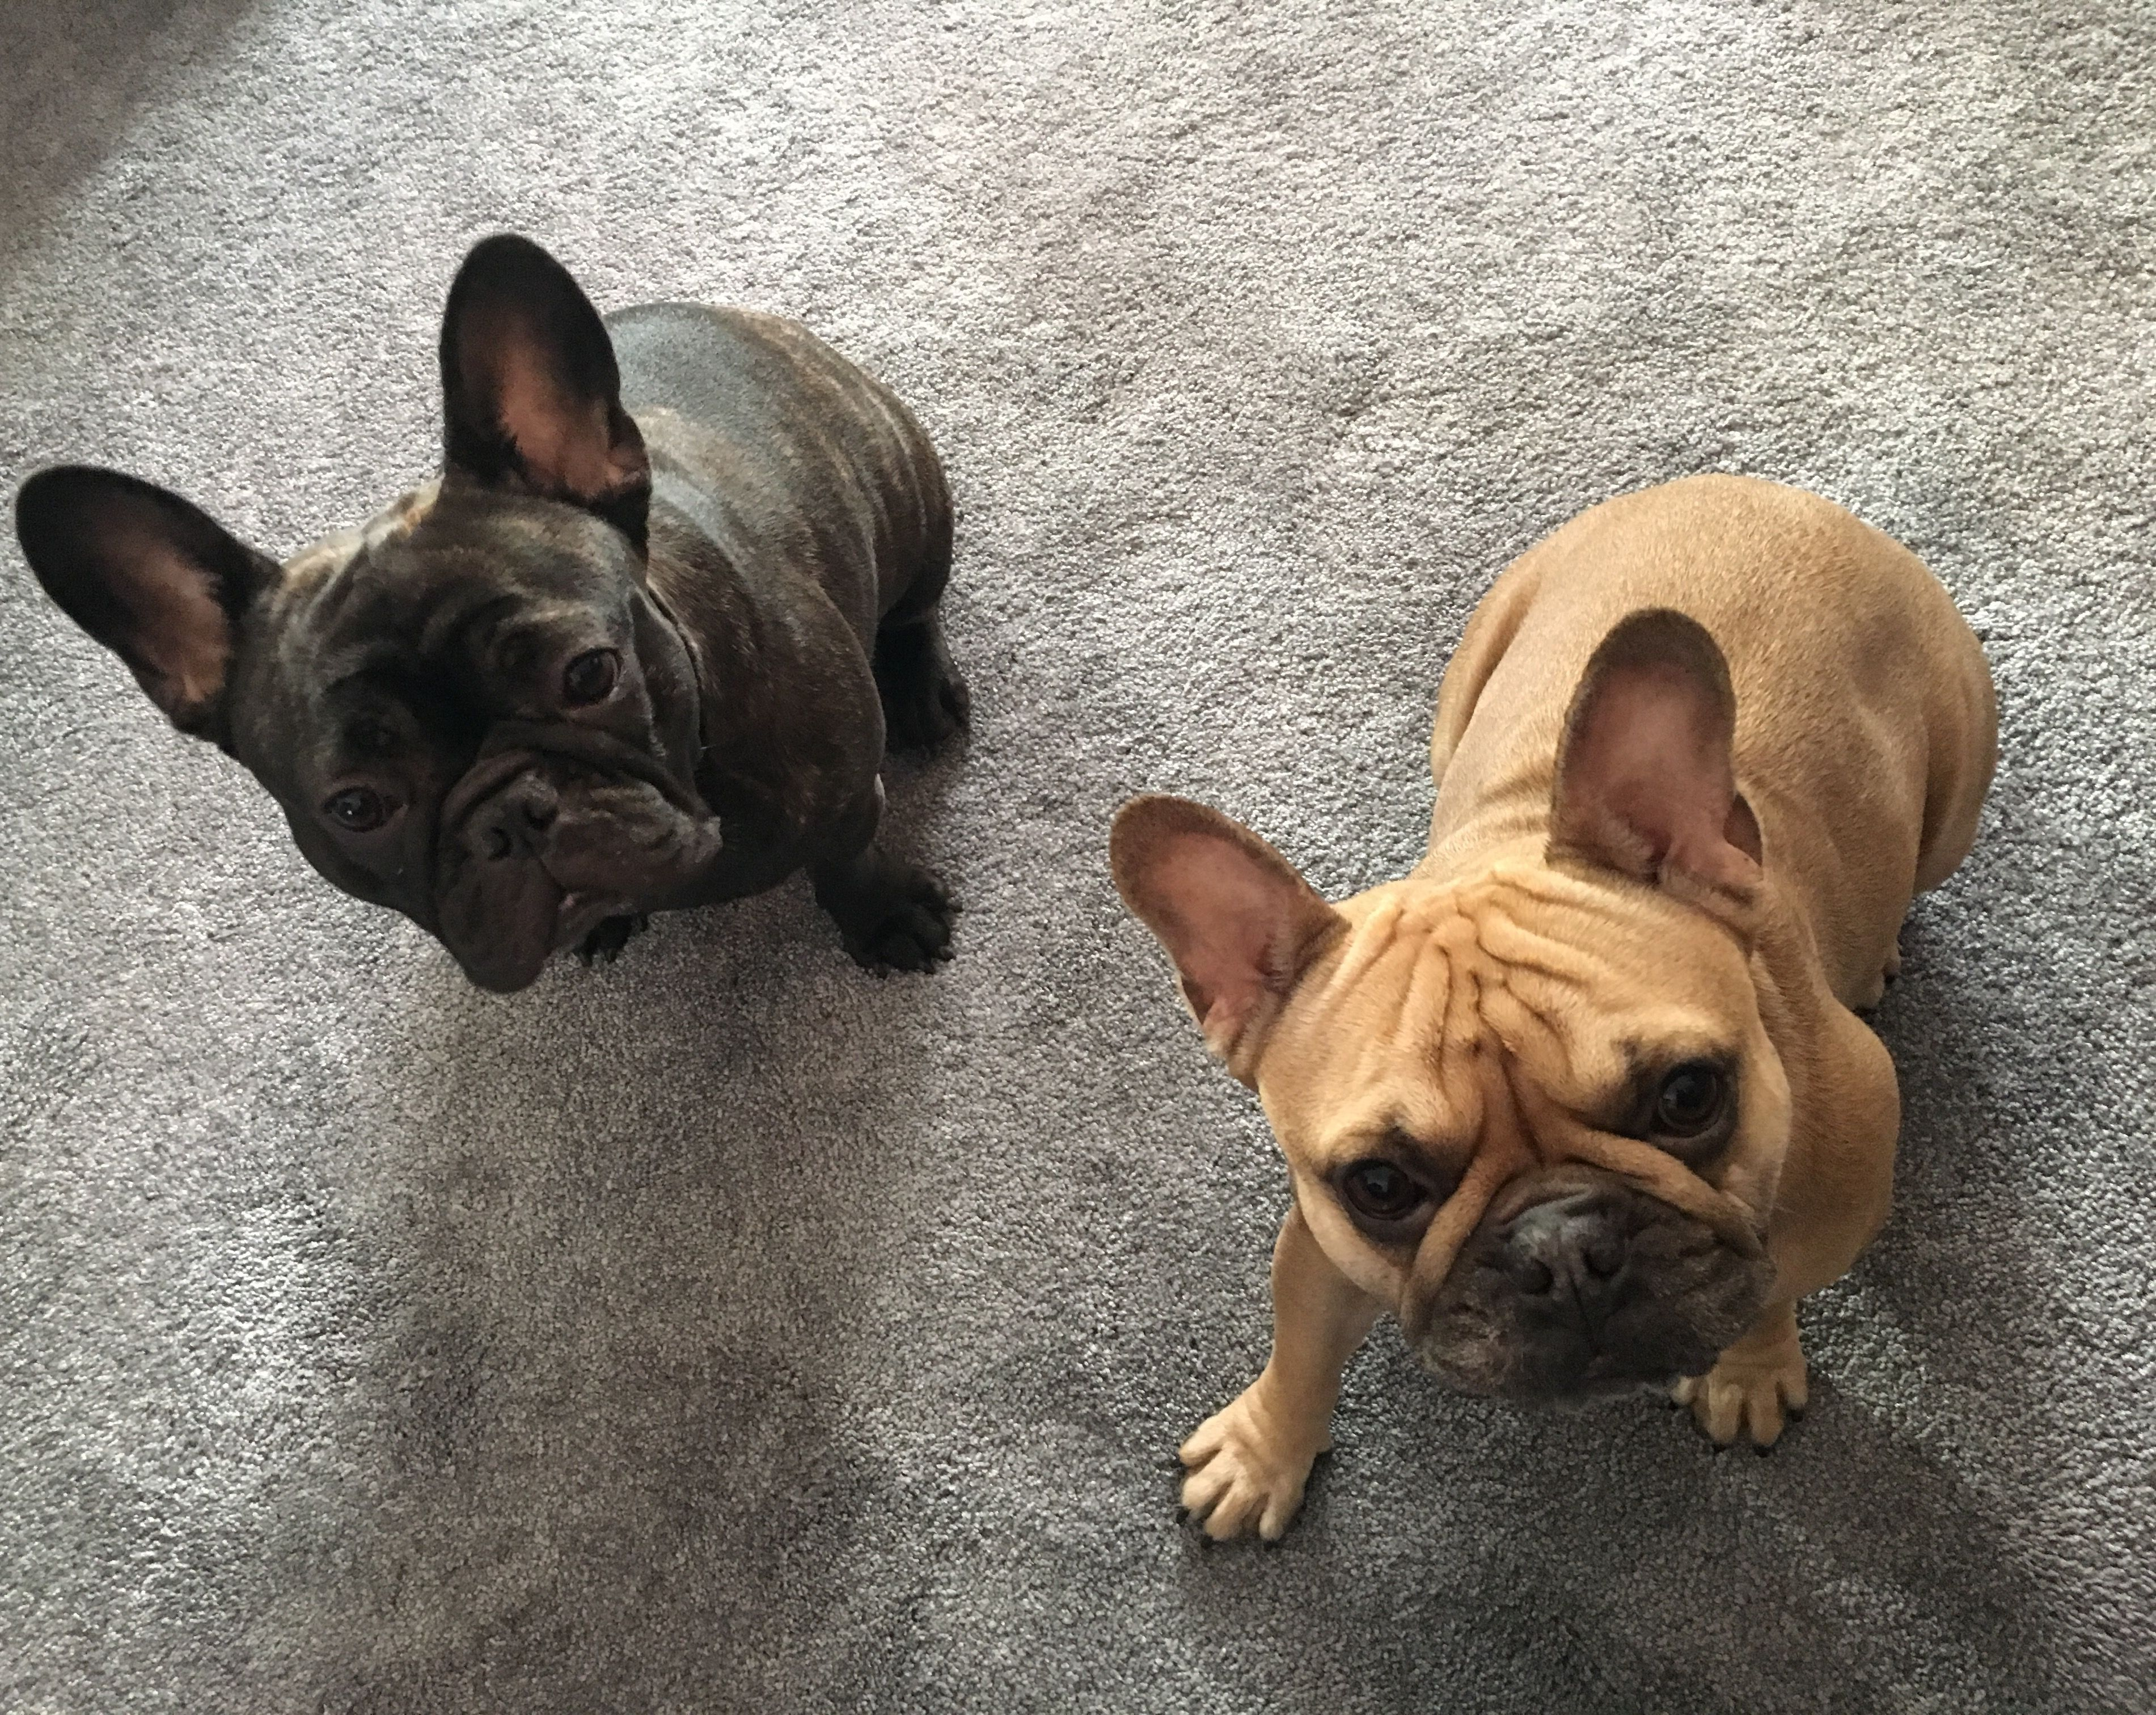 disco & kiki our brindle and fawn french bulldogs. we love